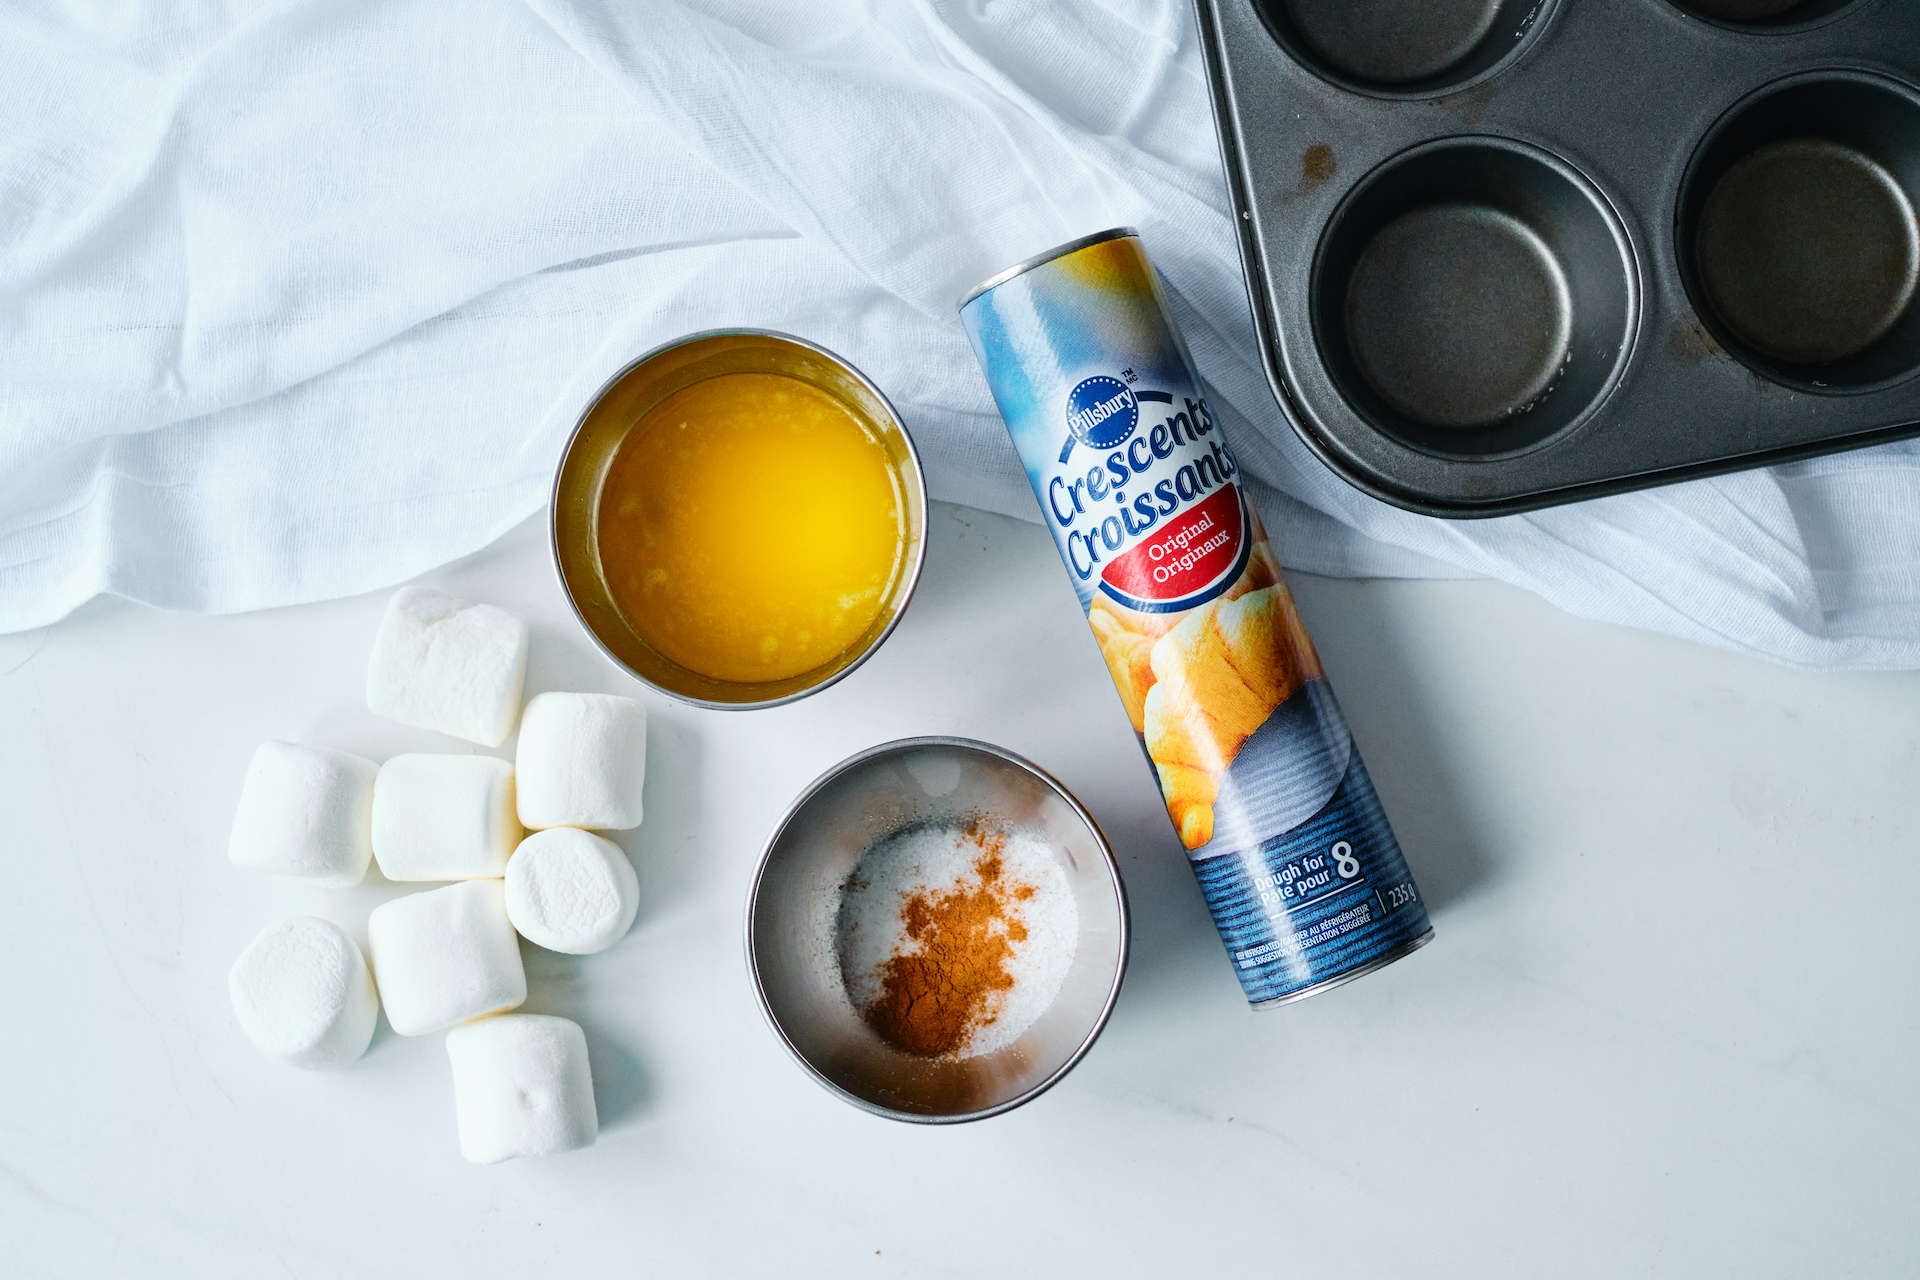 ingredients needed for recipe sitting on a white counter